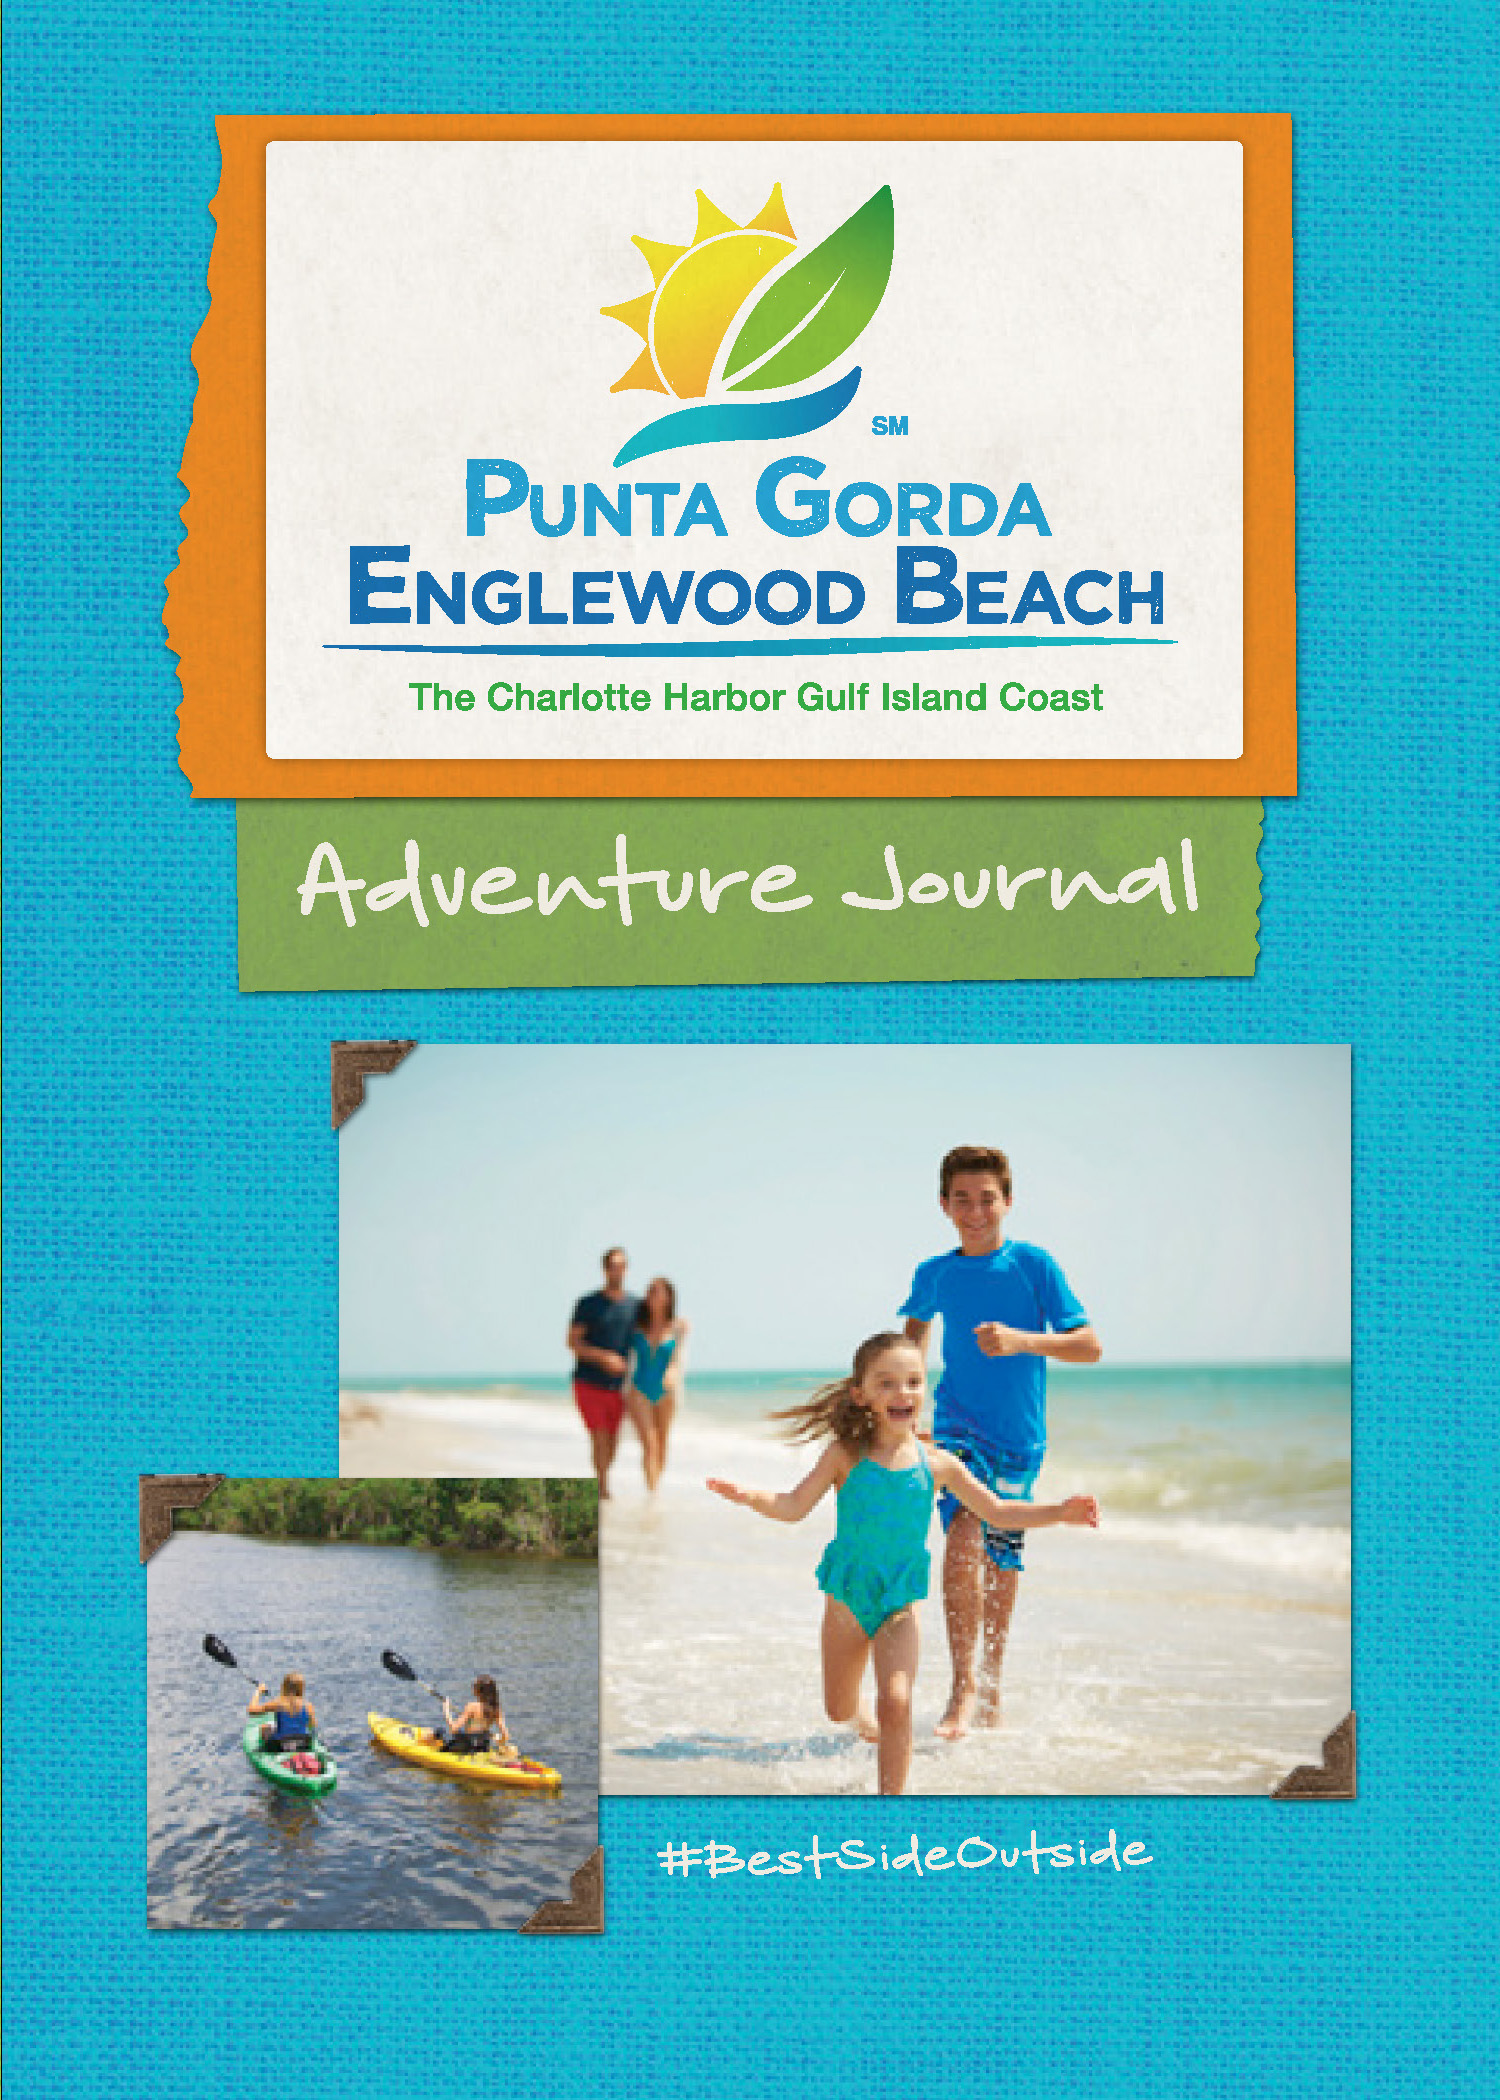 Punta Gorda/Englewood Beach Adventure Guide